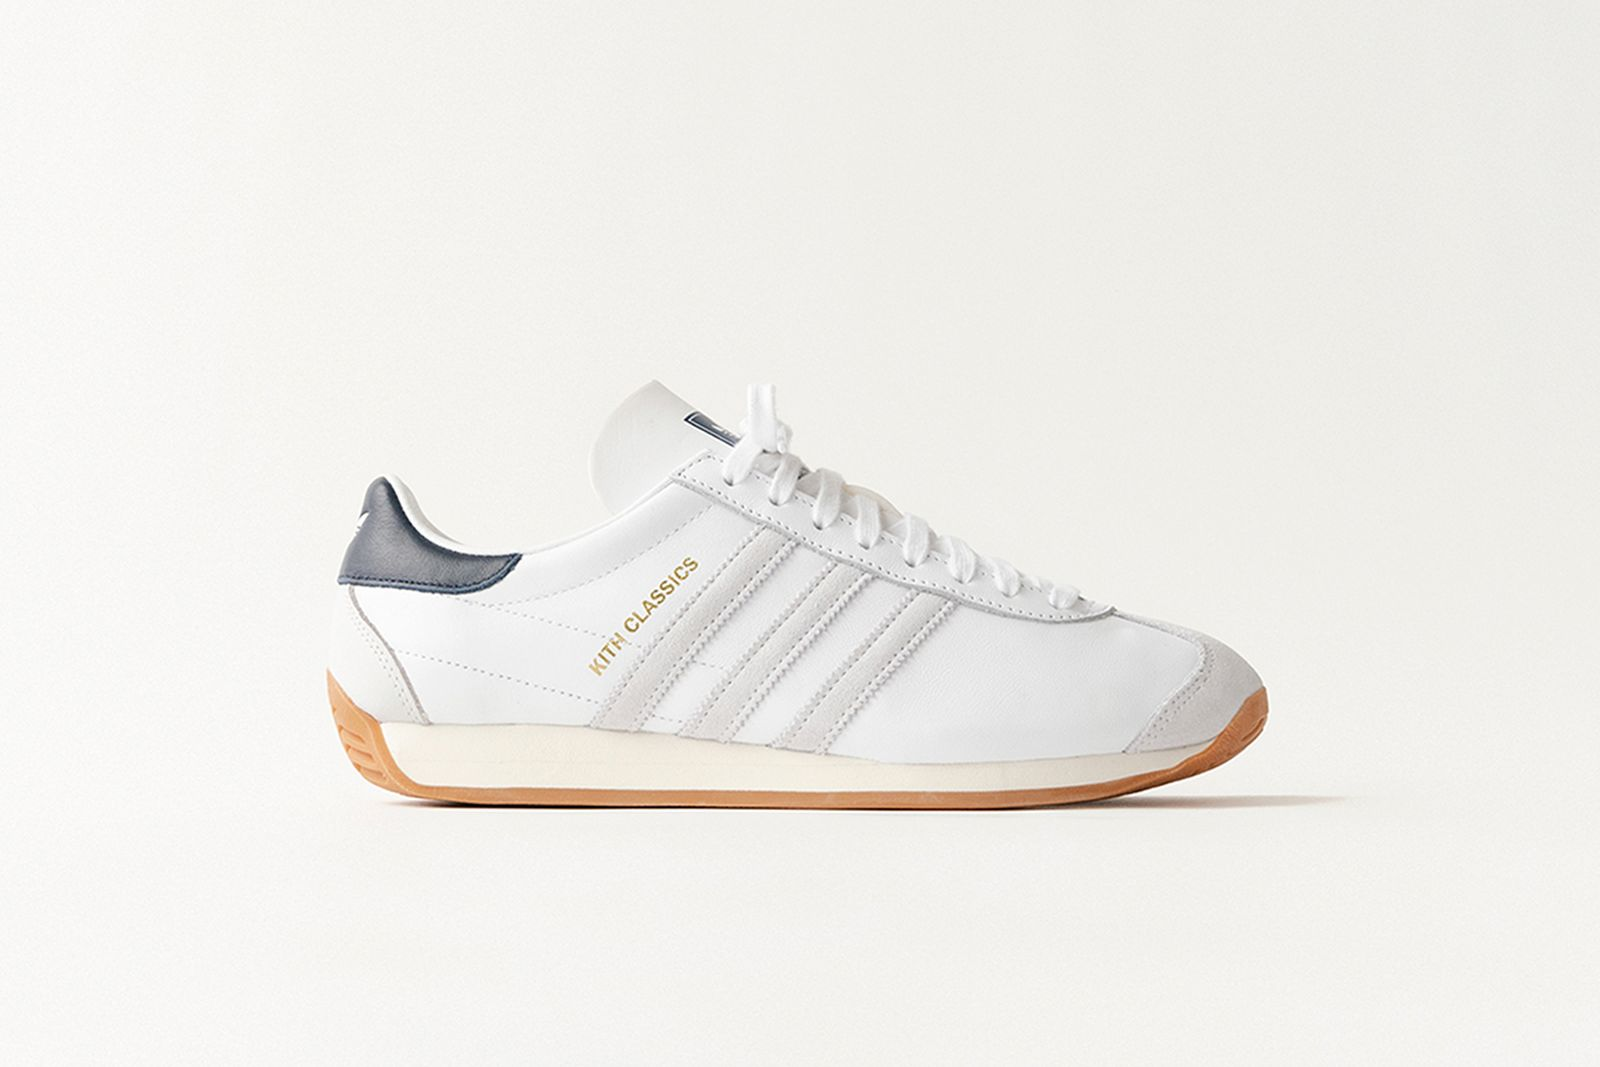 kith-adidas-summer-2021-release-info-12